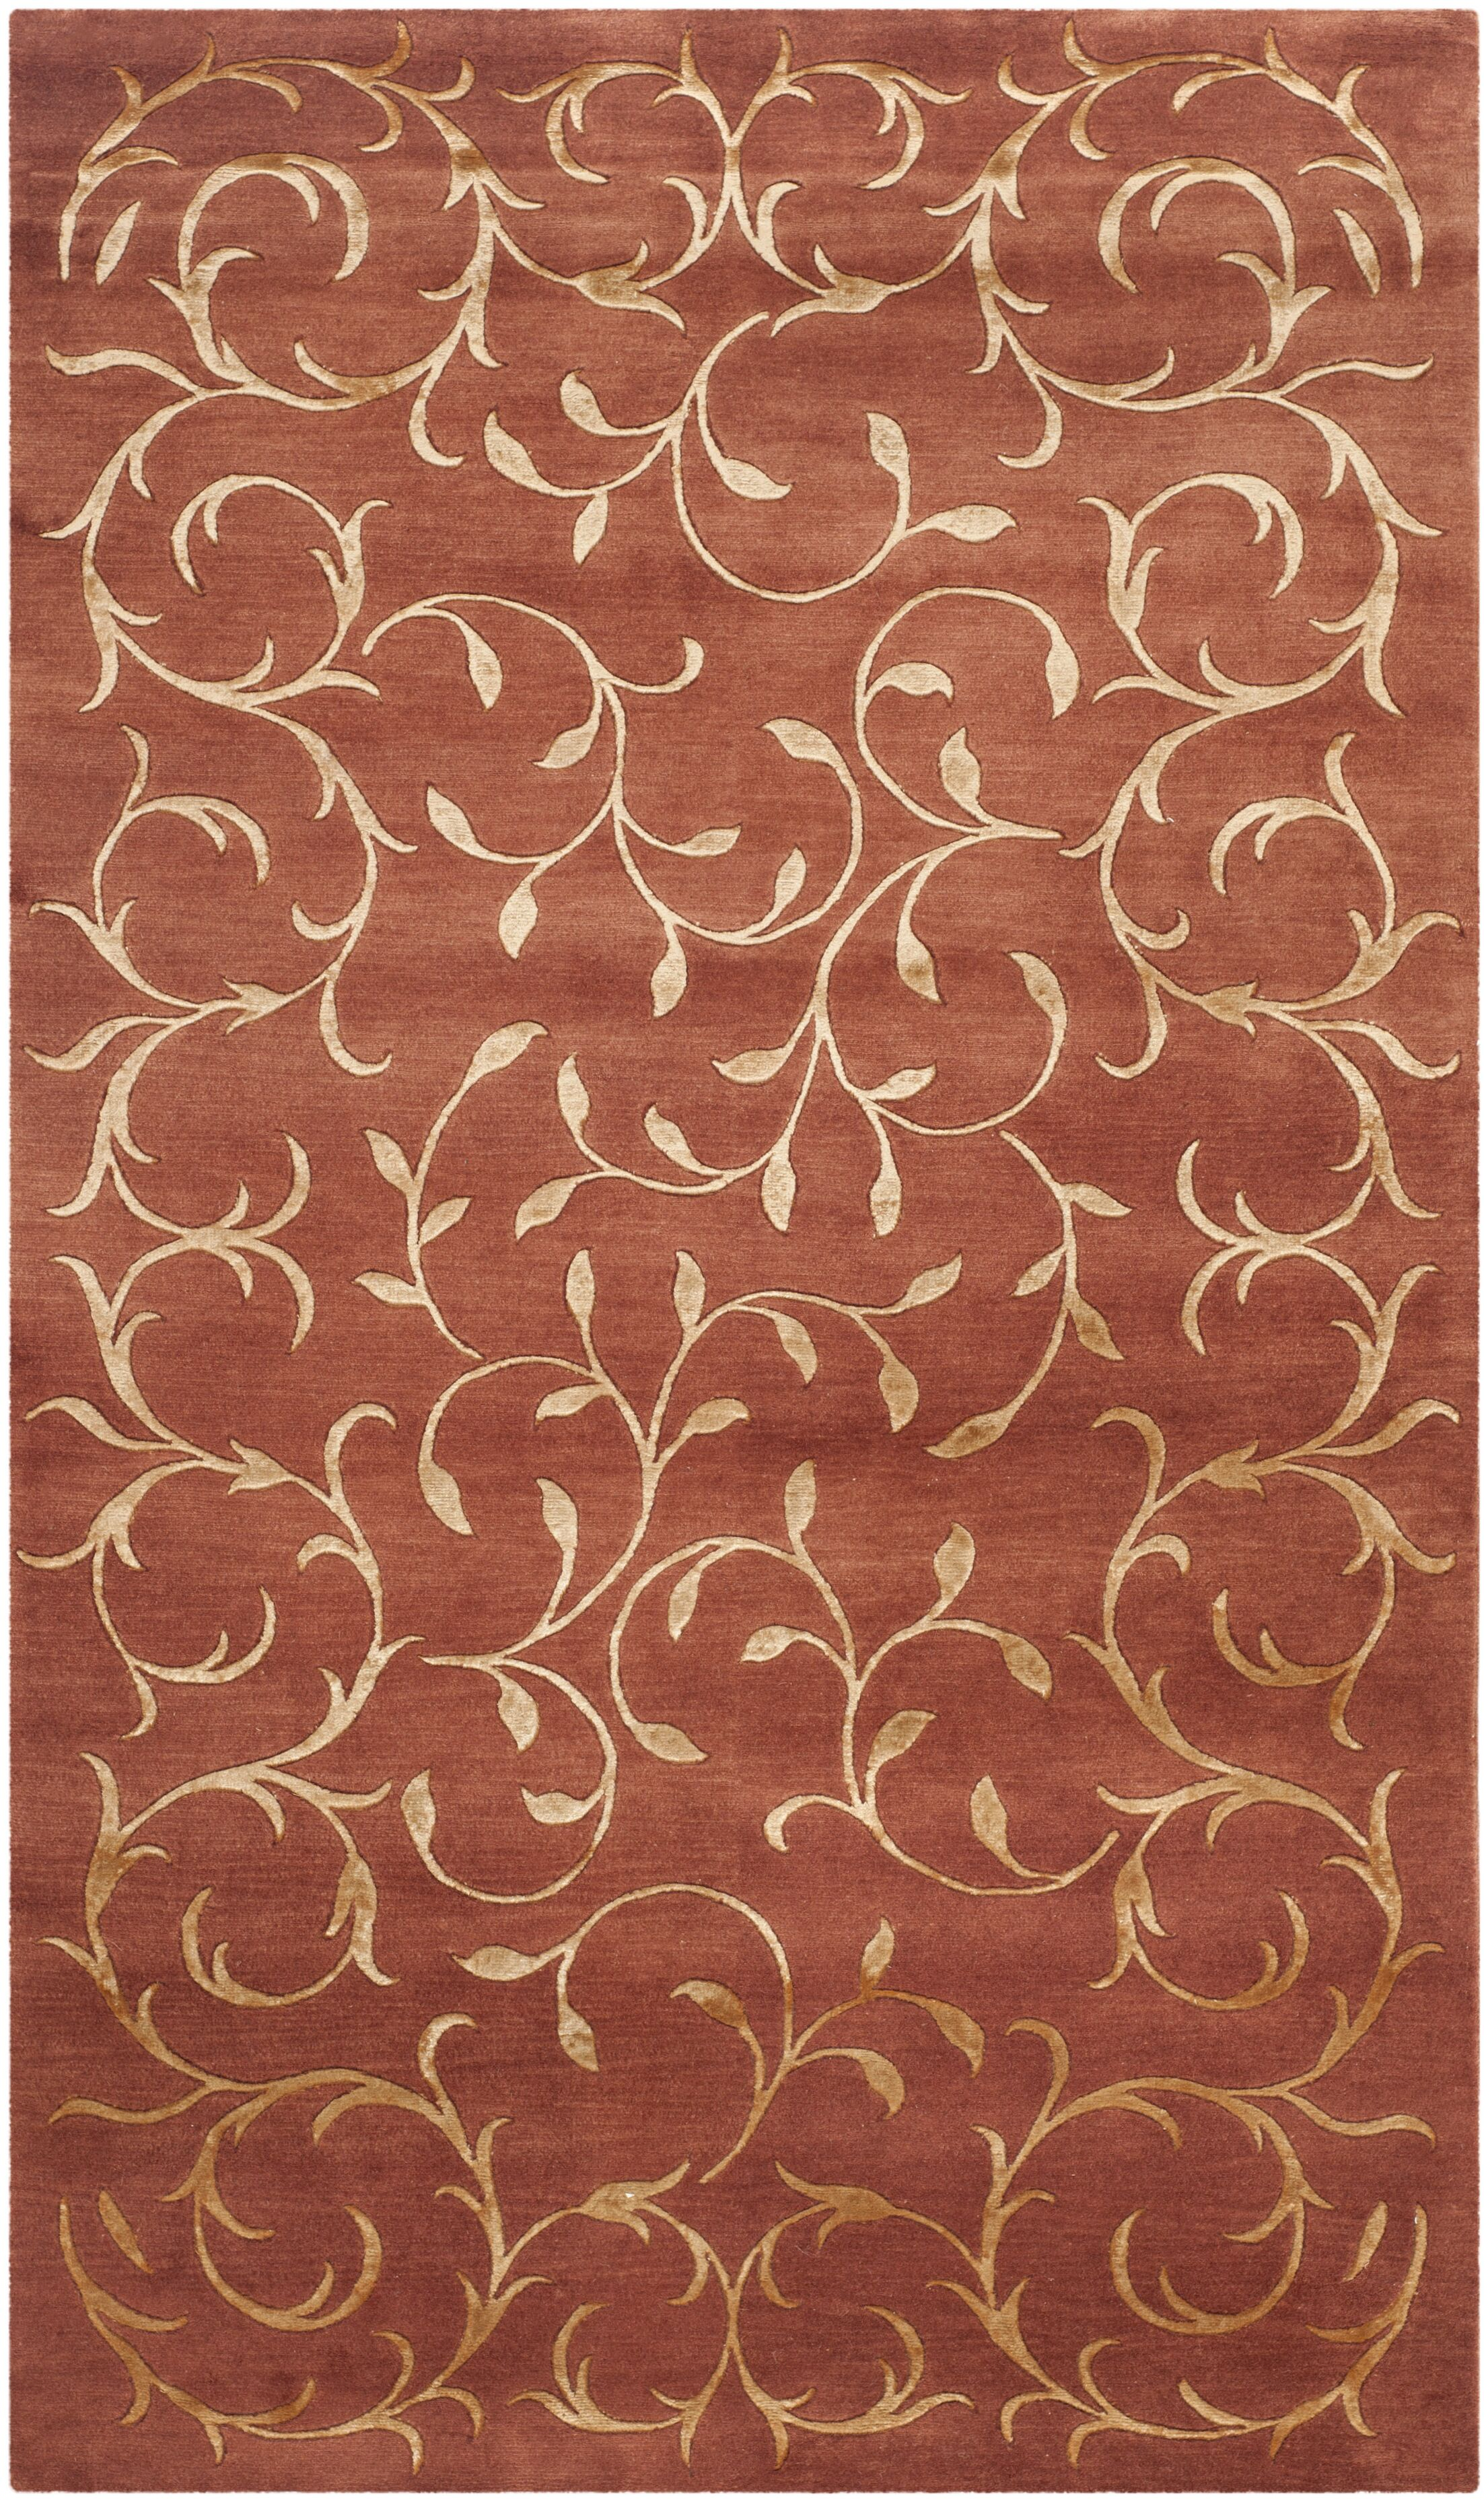 Echevarria Hand-Knotted Rust/Gold Area Rug Rug Size: Rectangle 3' x 5'